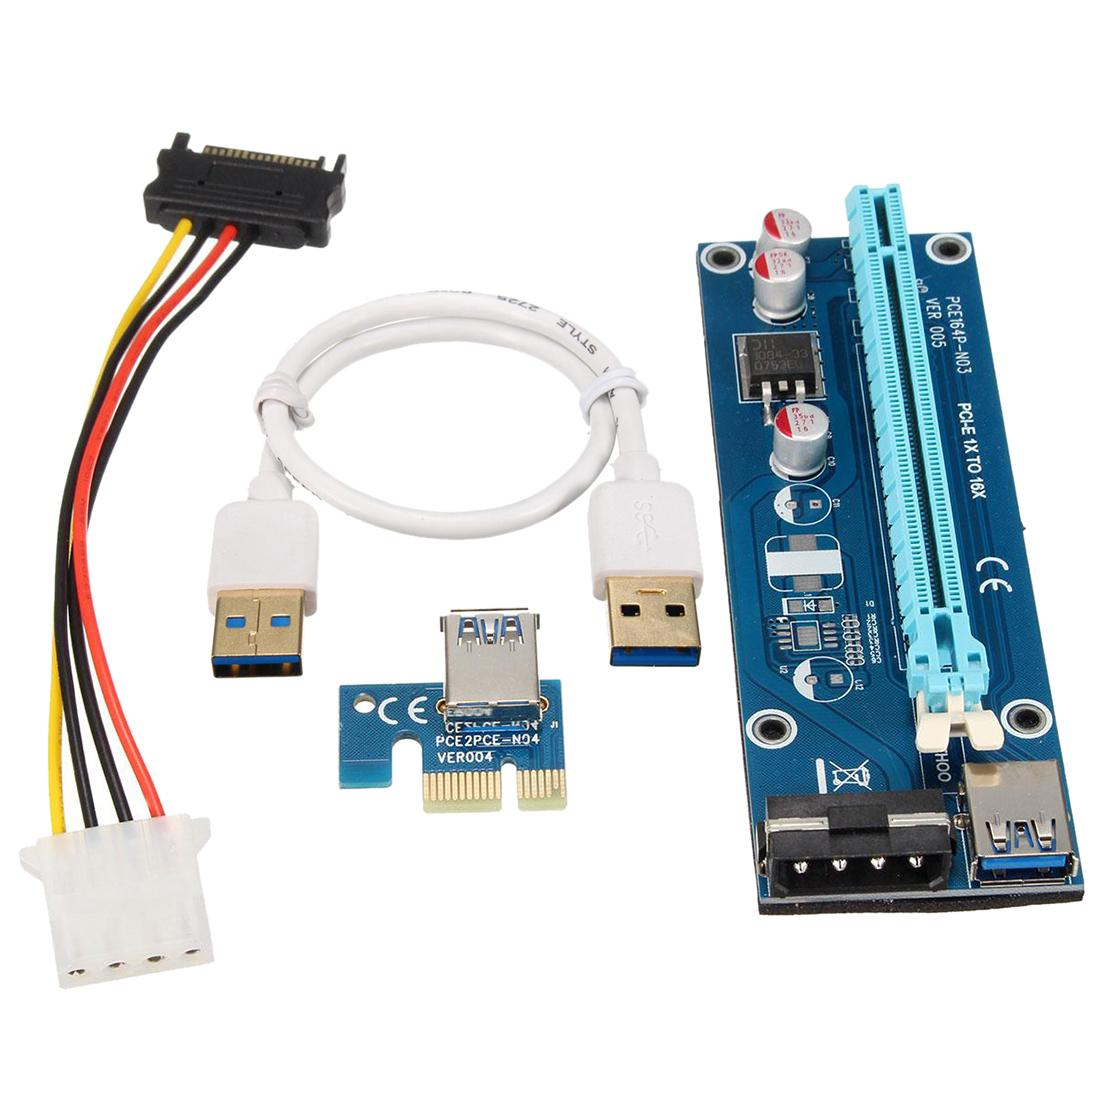 Wholesale Usb 3i E Express 1x To 16x Riser Board Extender Adapter Orico 30 7 Port Pci Card With Sata Cable Online